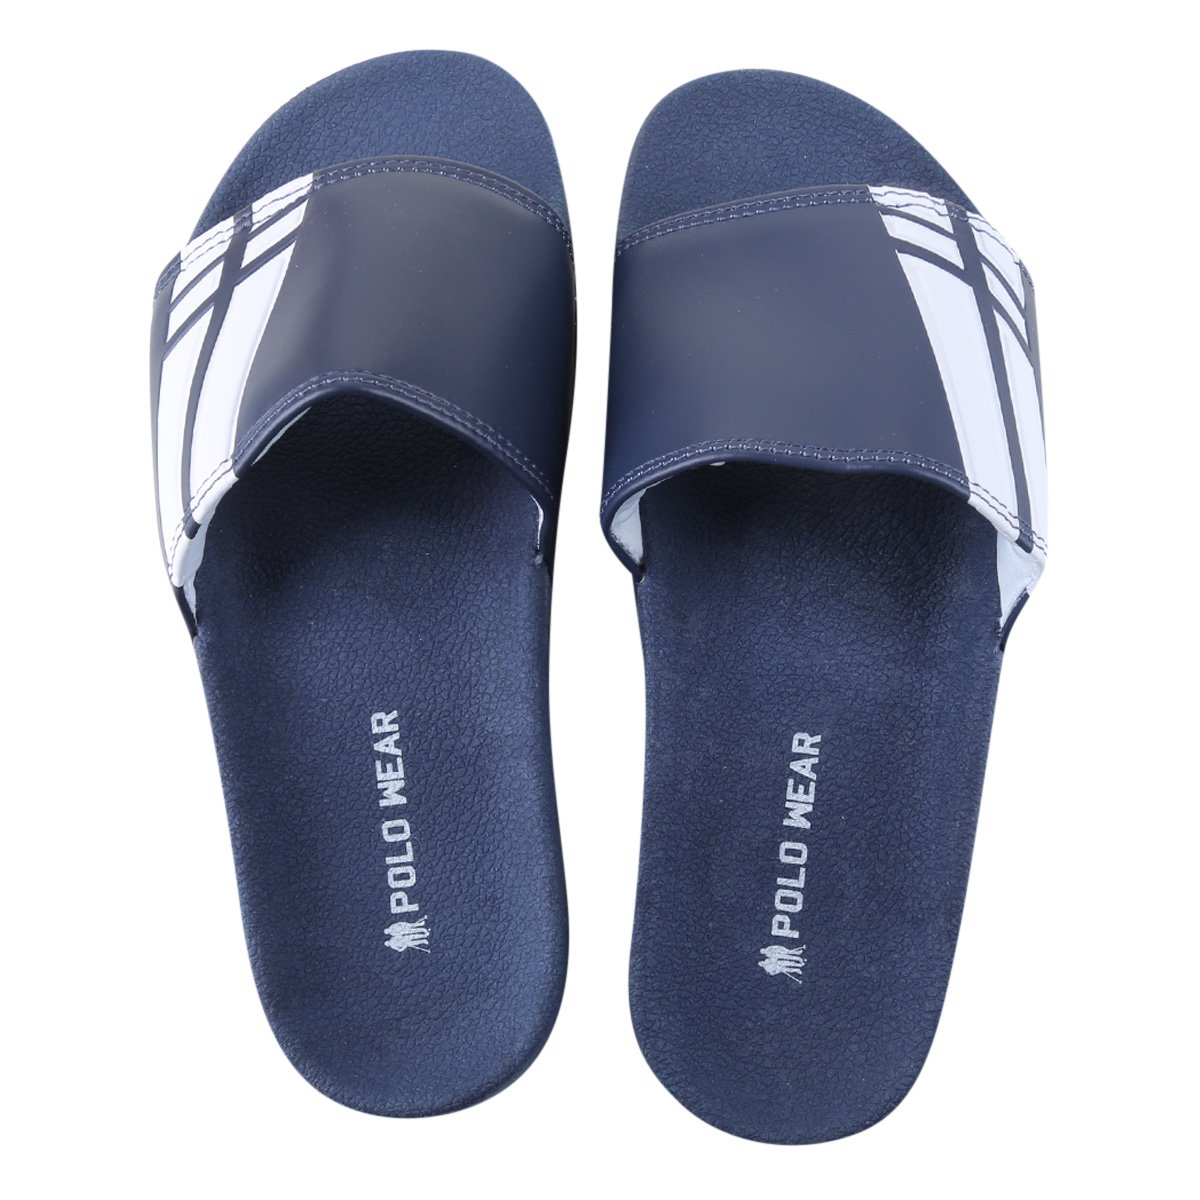 Chinelo Slide Polo Wear I Masculino